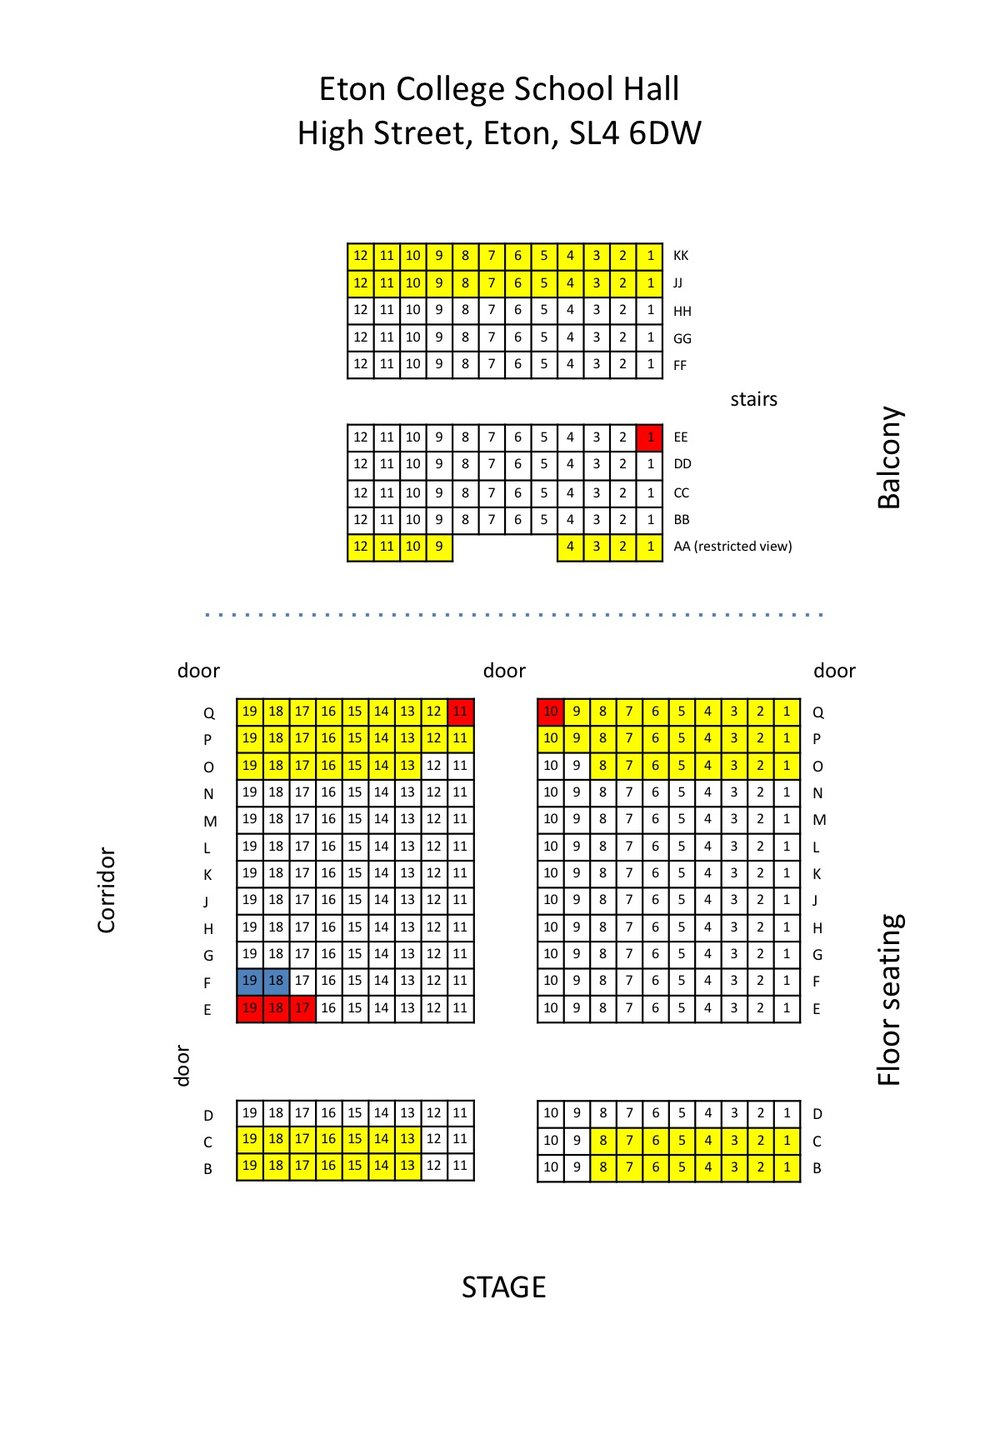 Eton seating schematic.jpg